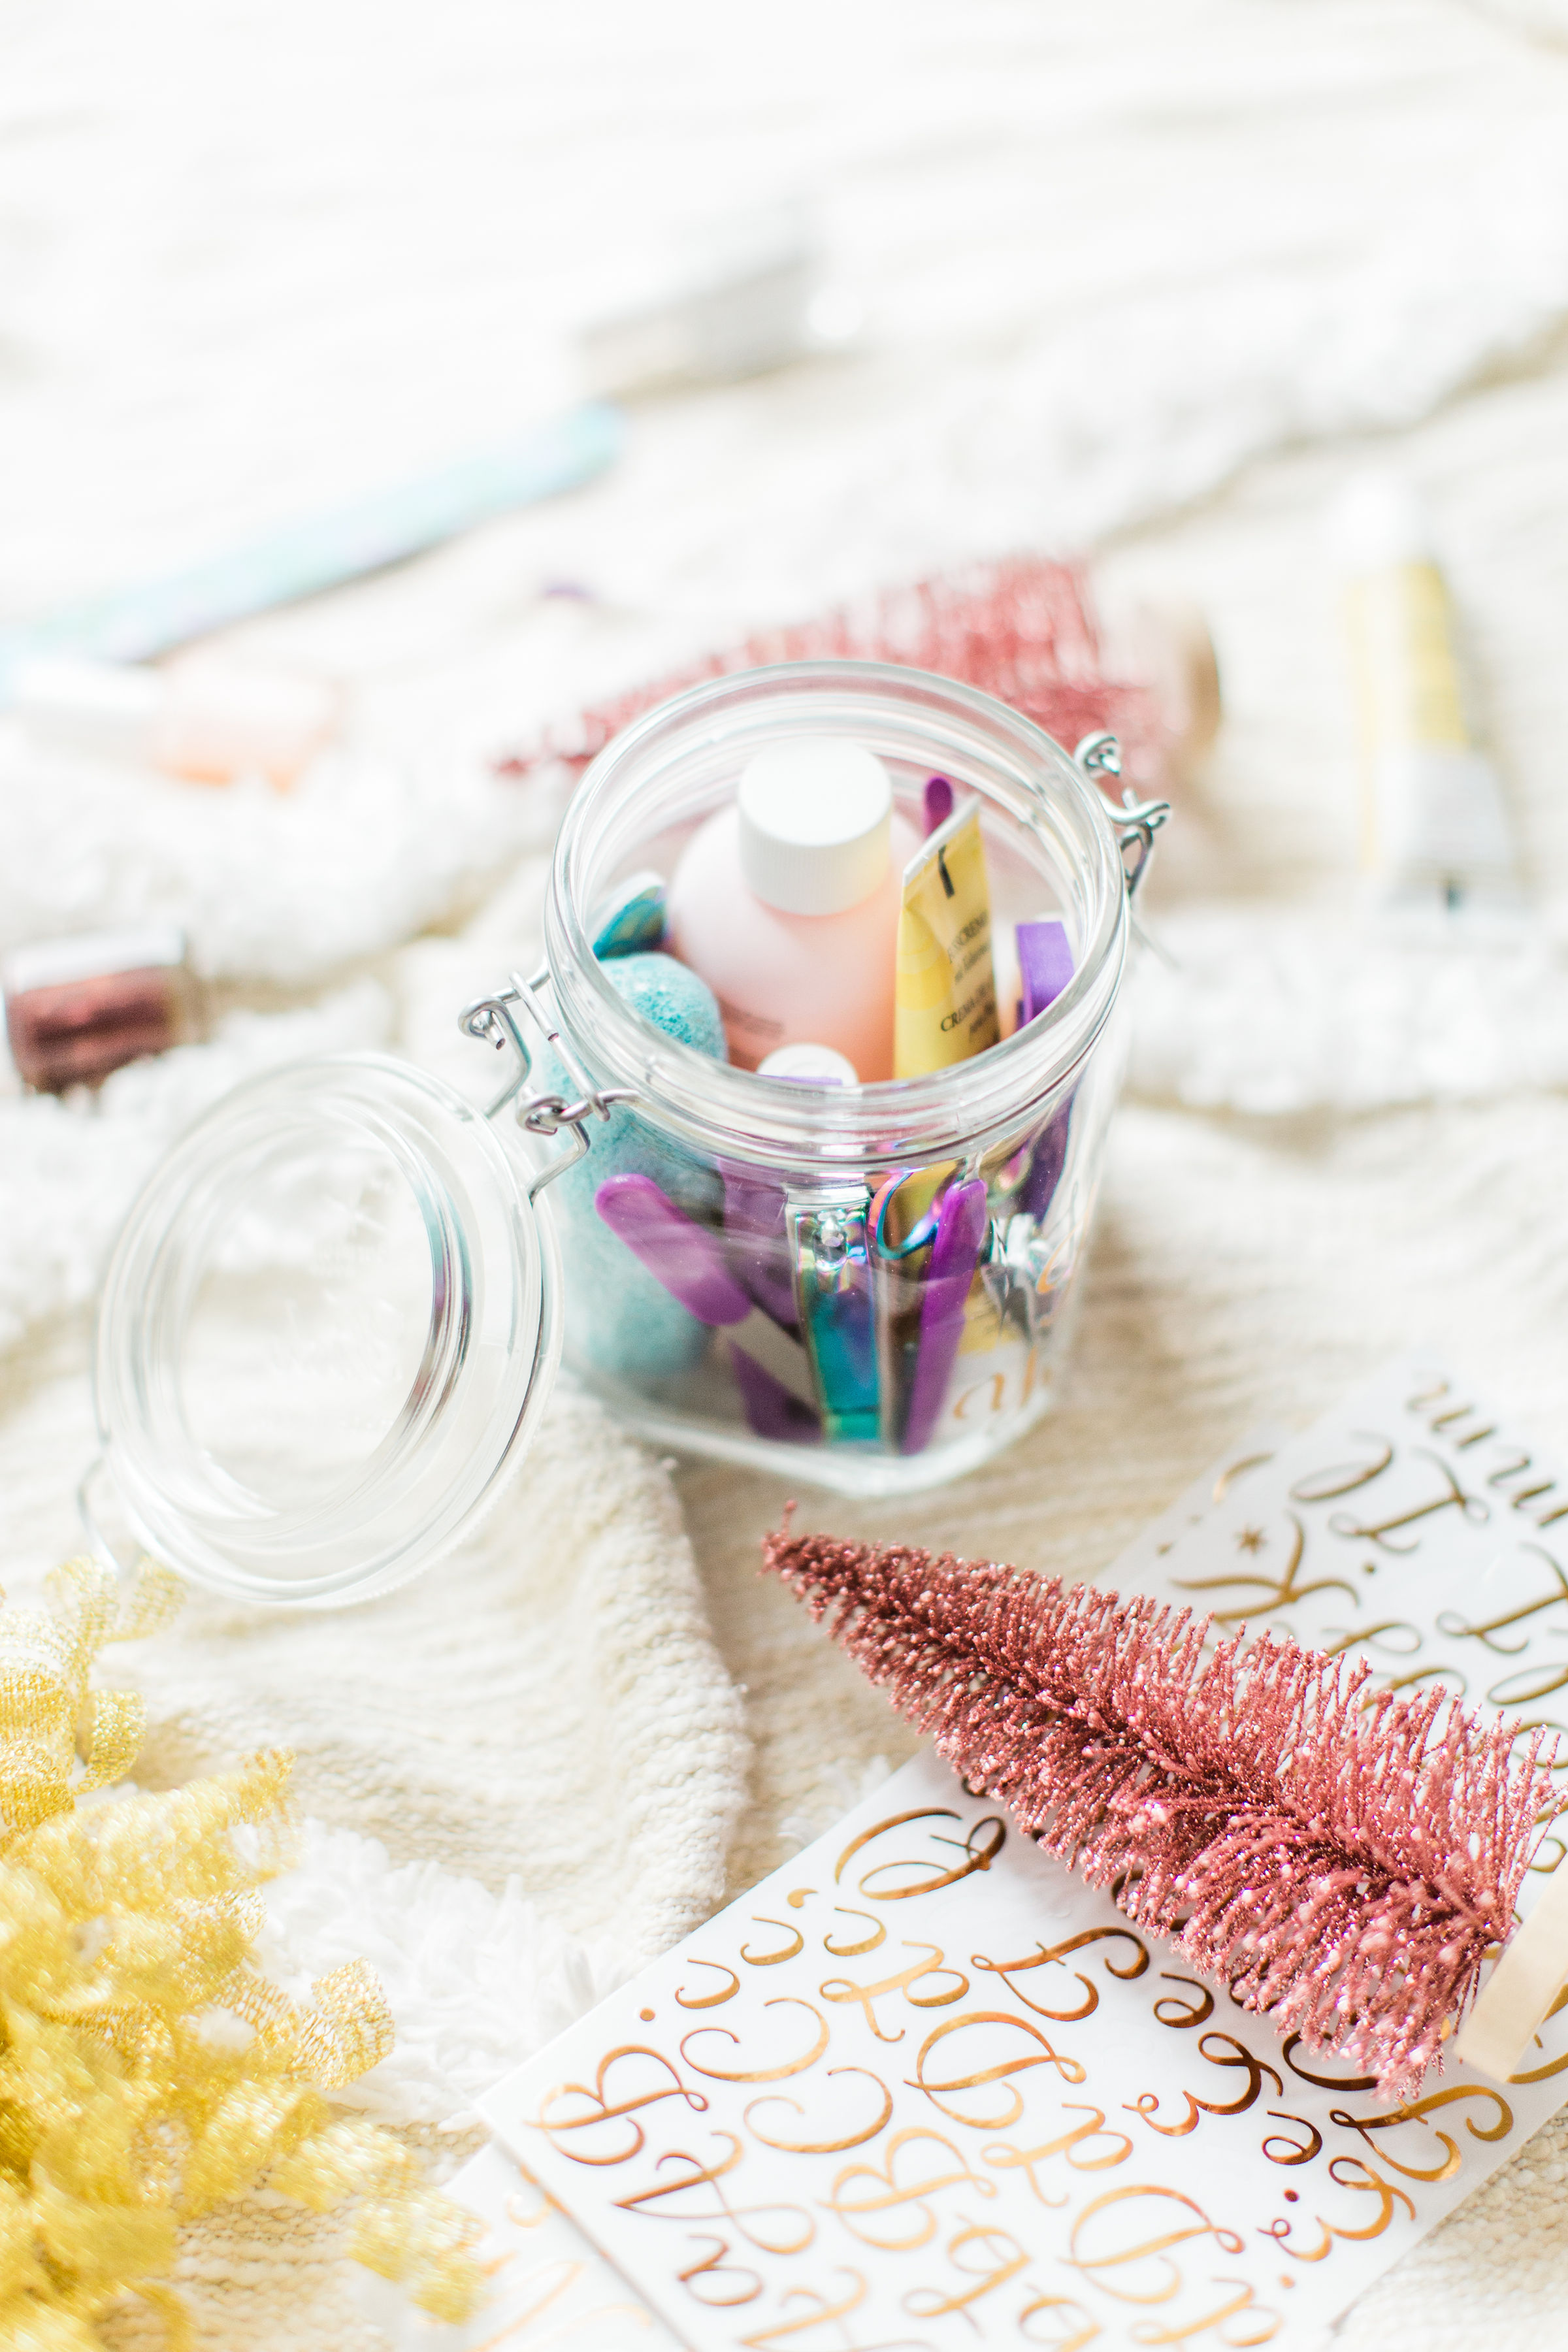 Looking for the perfect easy DIY gift for a friend, teacher, or beauty-lover in your life? I've got the cutest holiday gift idea for you: a DIY pedicure in a jar. Click through for the details. #giftgiving #teachergift #pedicureinajar #holidaydiy #diygift #holidaygifting #treatyoself | glitterinc.com | @glitterinc